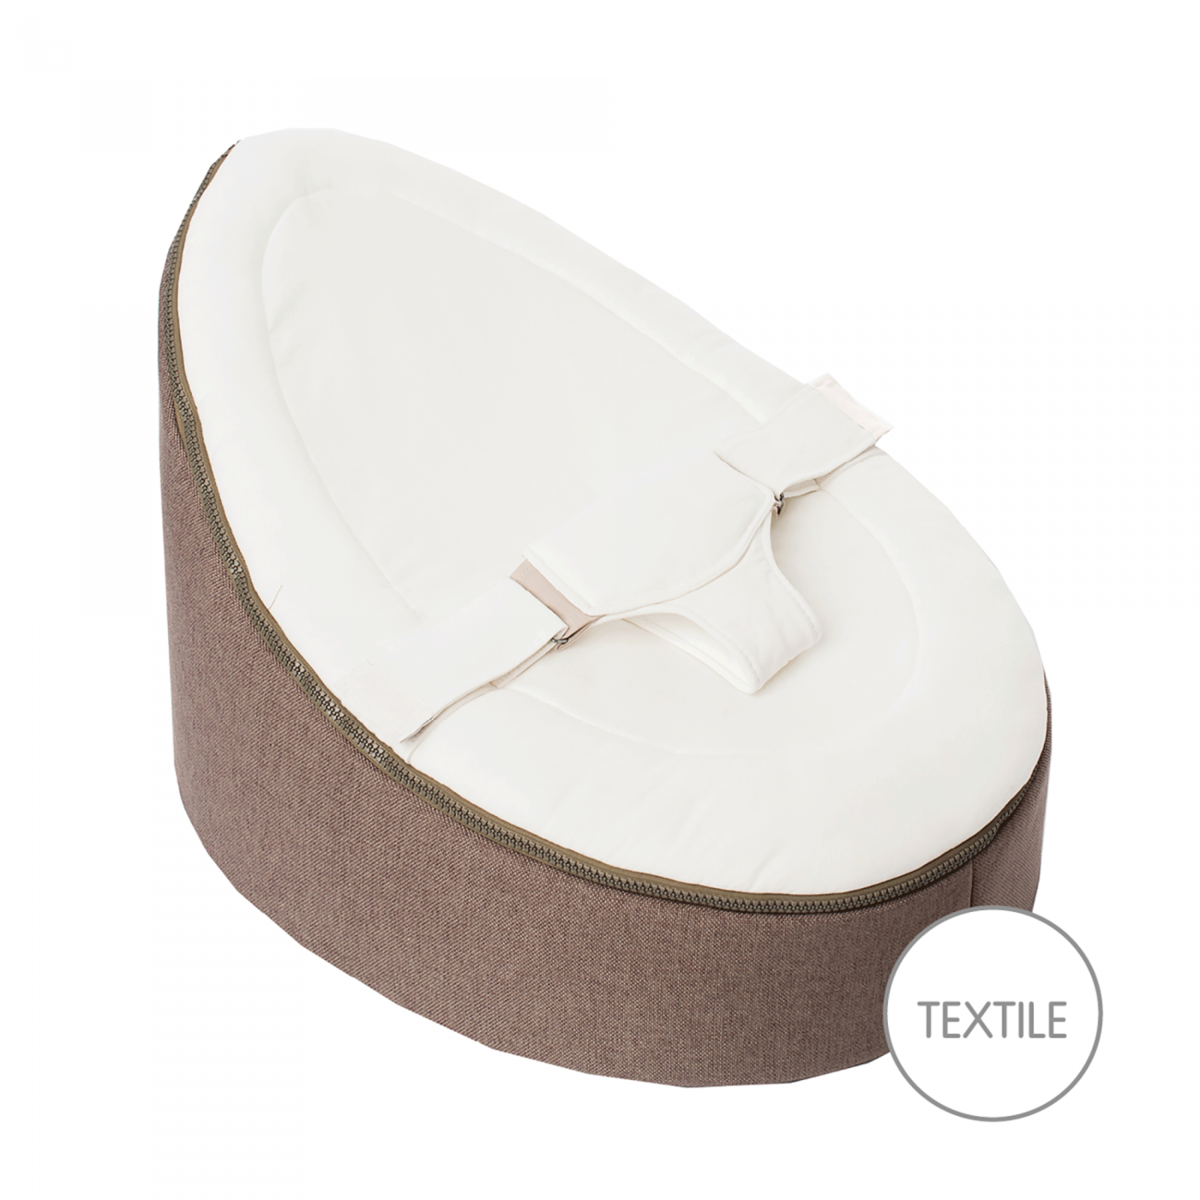 Home Taupe / Home White - Sitterit - 5400653999181 - 8